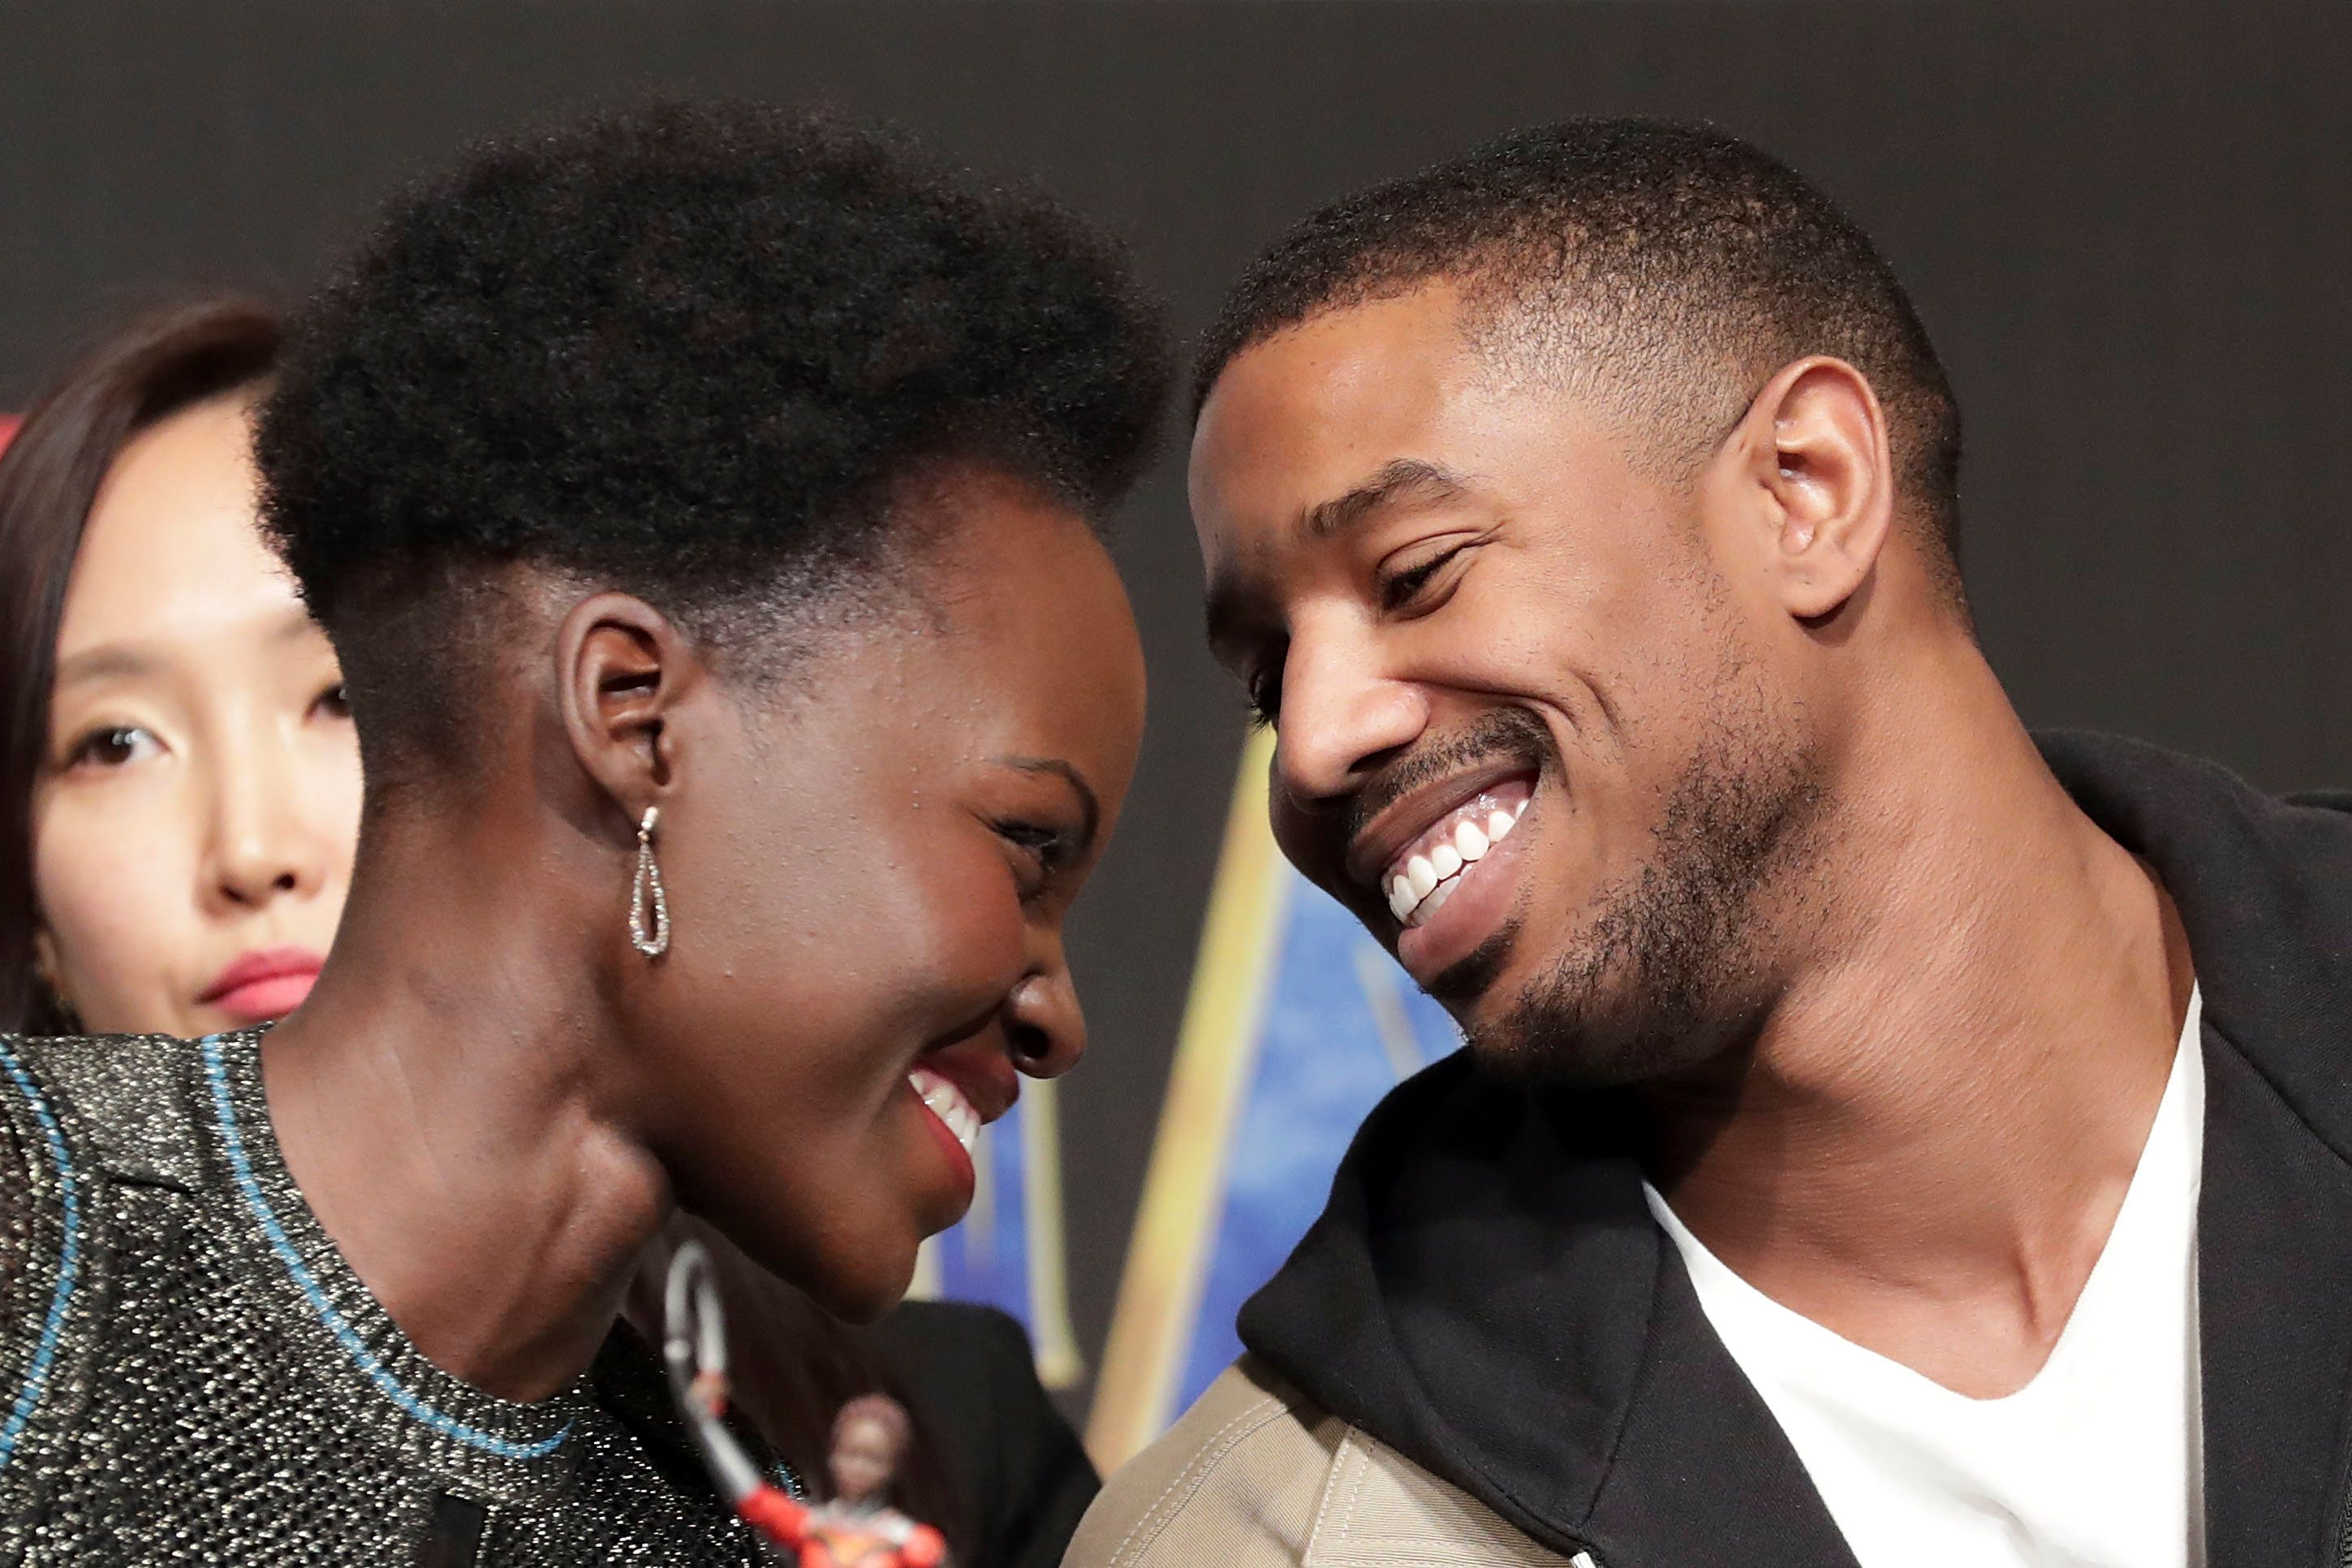 SEOUL, SOUTH KOREA - FEBRUARY 05:  Actor Lupita Nyong'o(L) and Michael B. Jordan attend the press conference for the Seoul premiere of 'Black Panther' on February 5, 2018 in Seoul, South Korea.  (Photo by Han Myung-Gu/Getty Images for Disney)